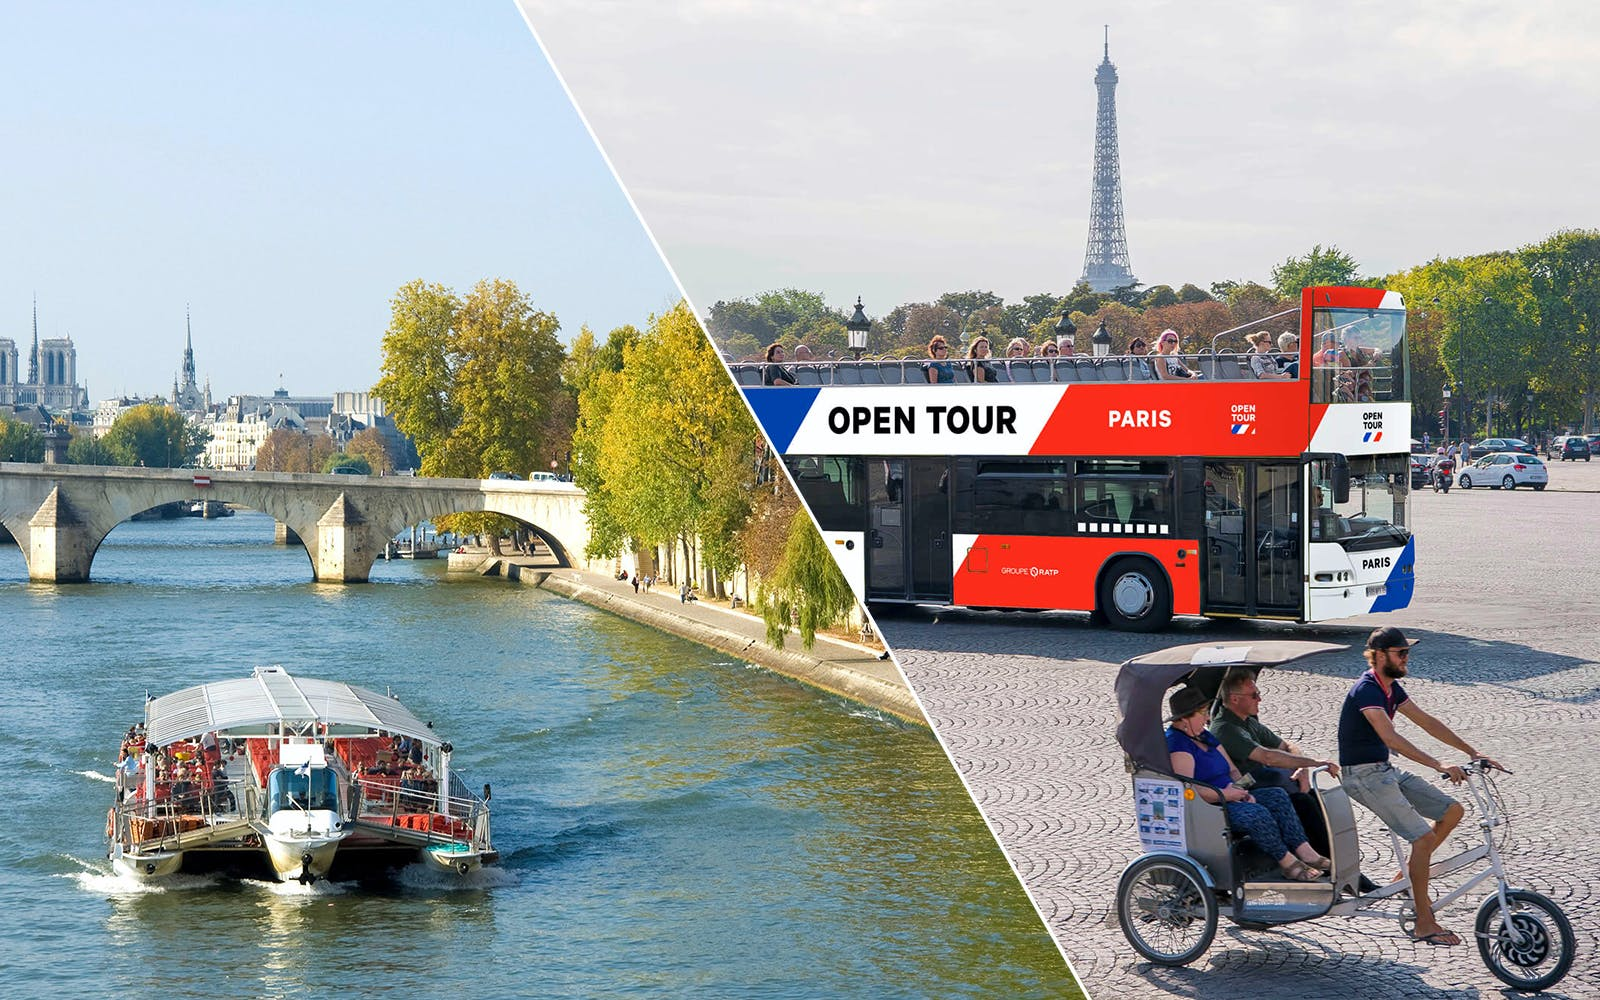 Hop-On Hop-Off Tour & Seine River Cruise Combo